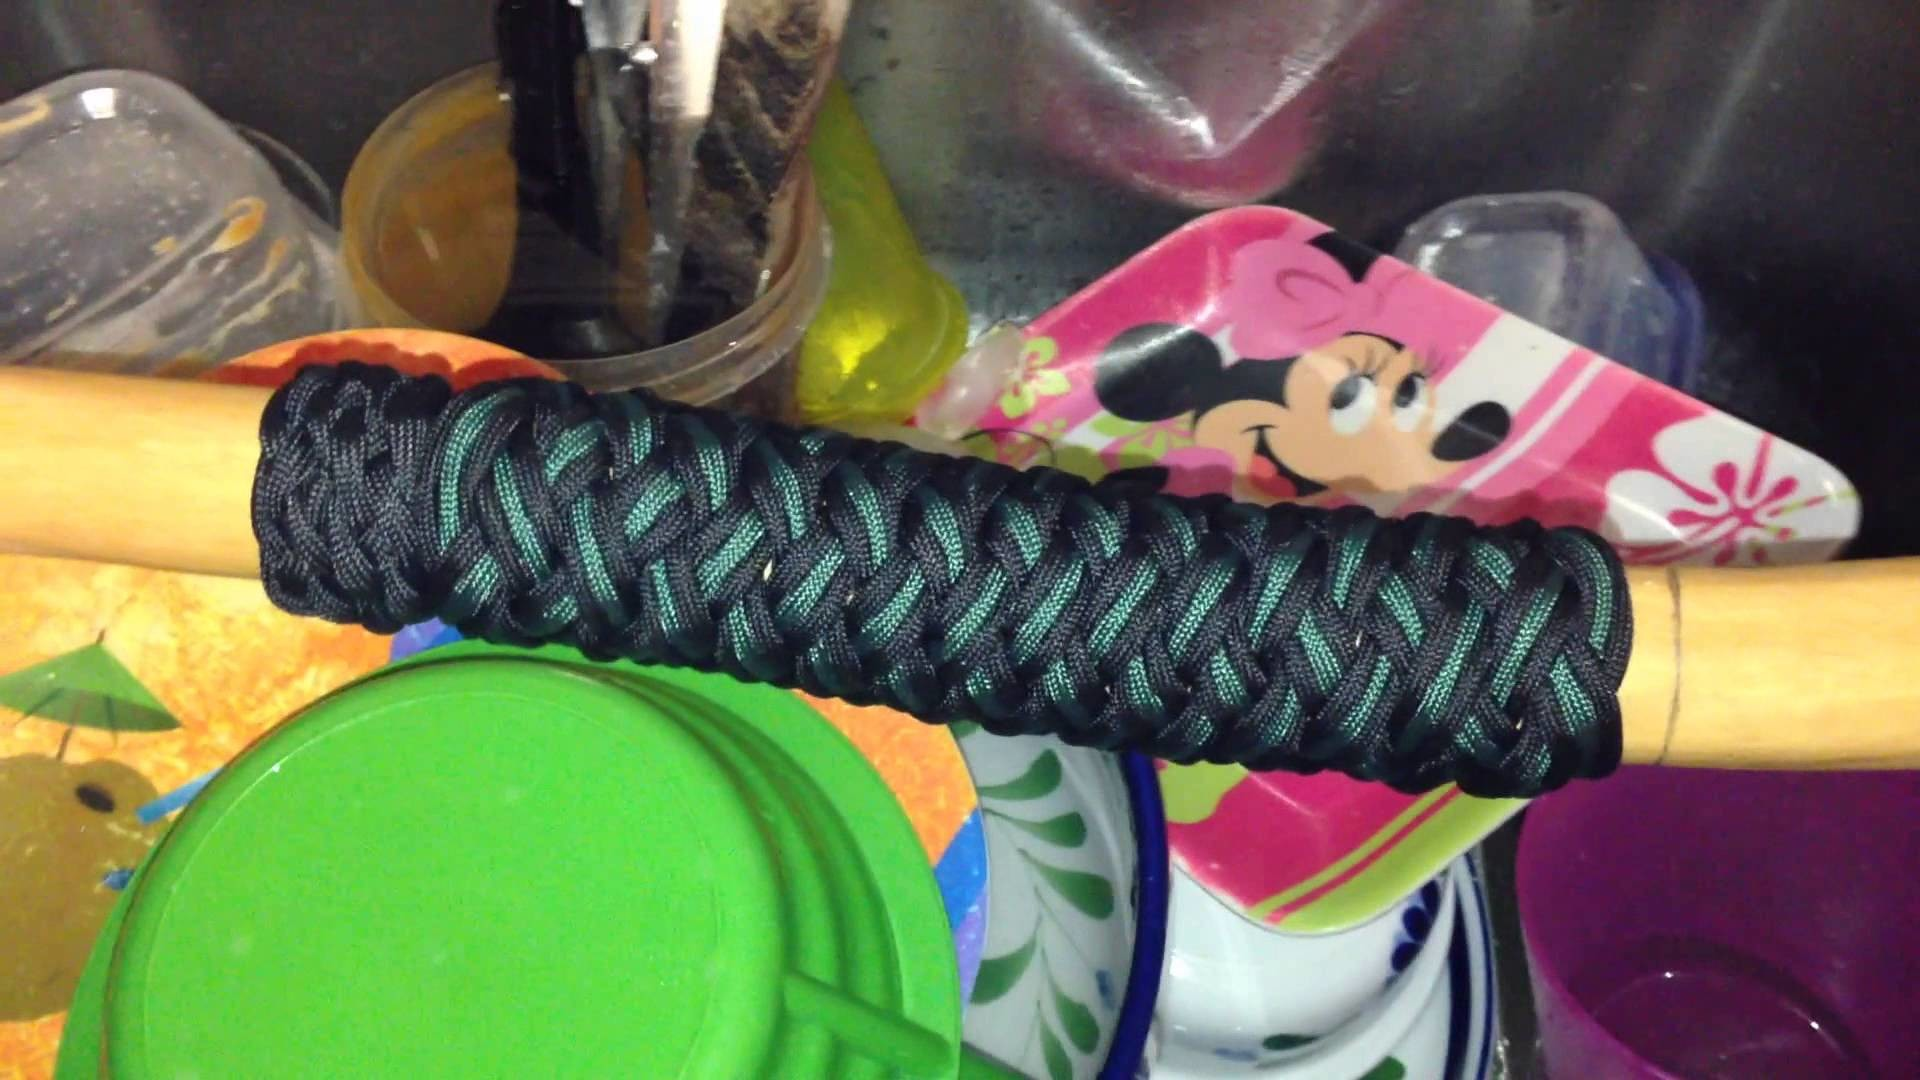 Paracordist how to boil paracord on turks head hiking staff handle